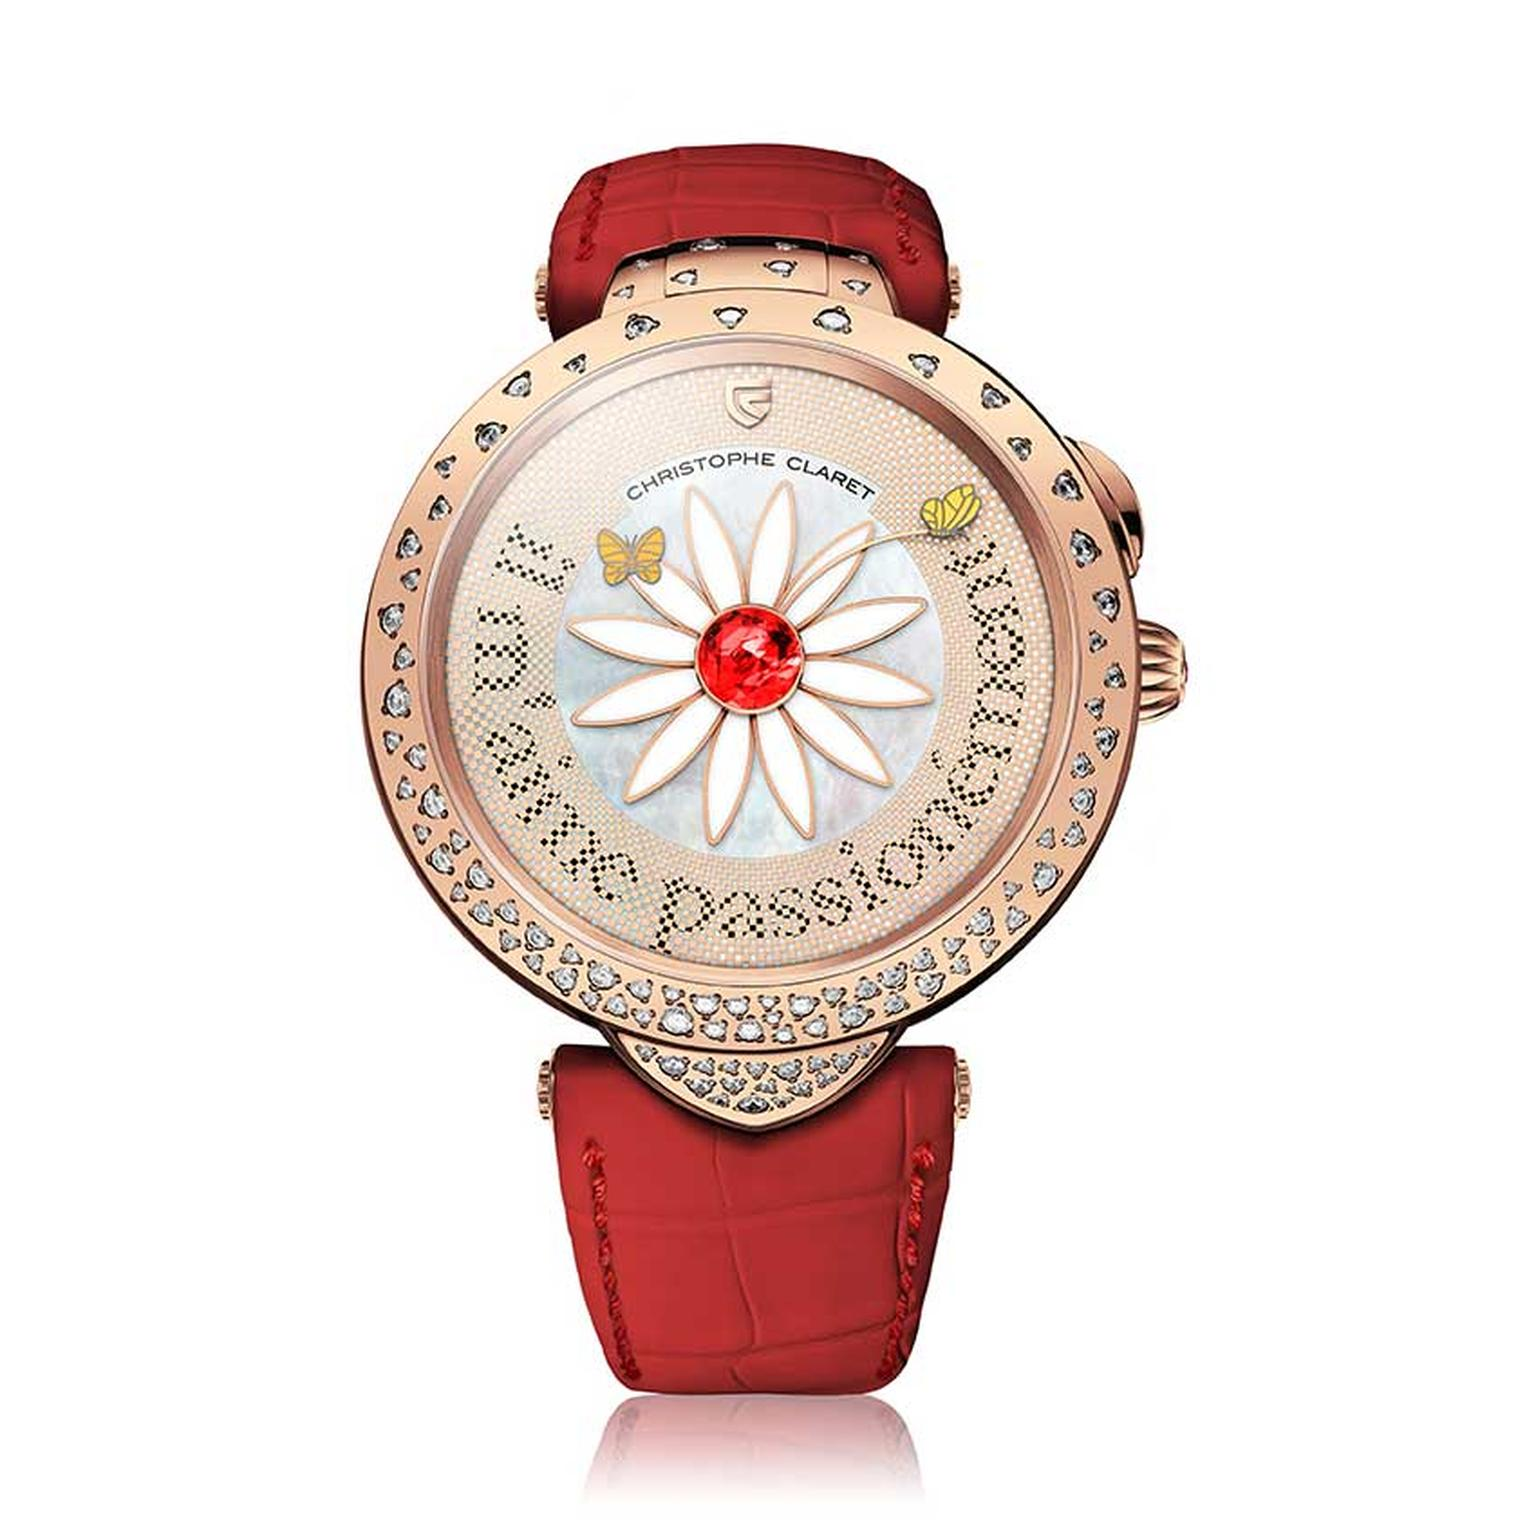 Christophe Claret Marguerite ladies' watch in red